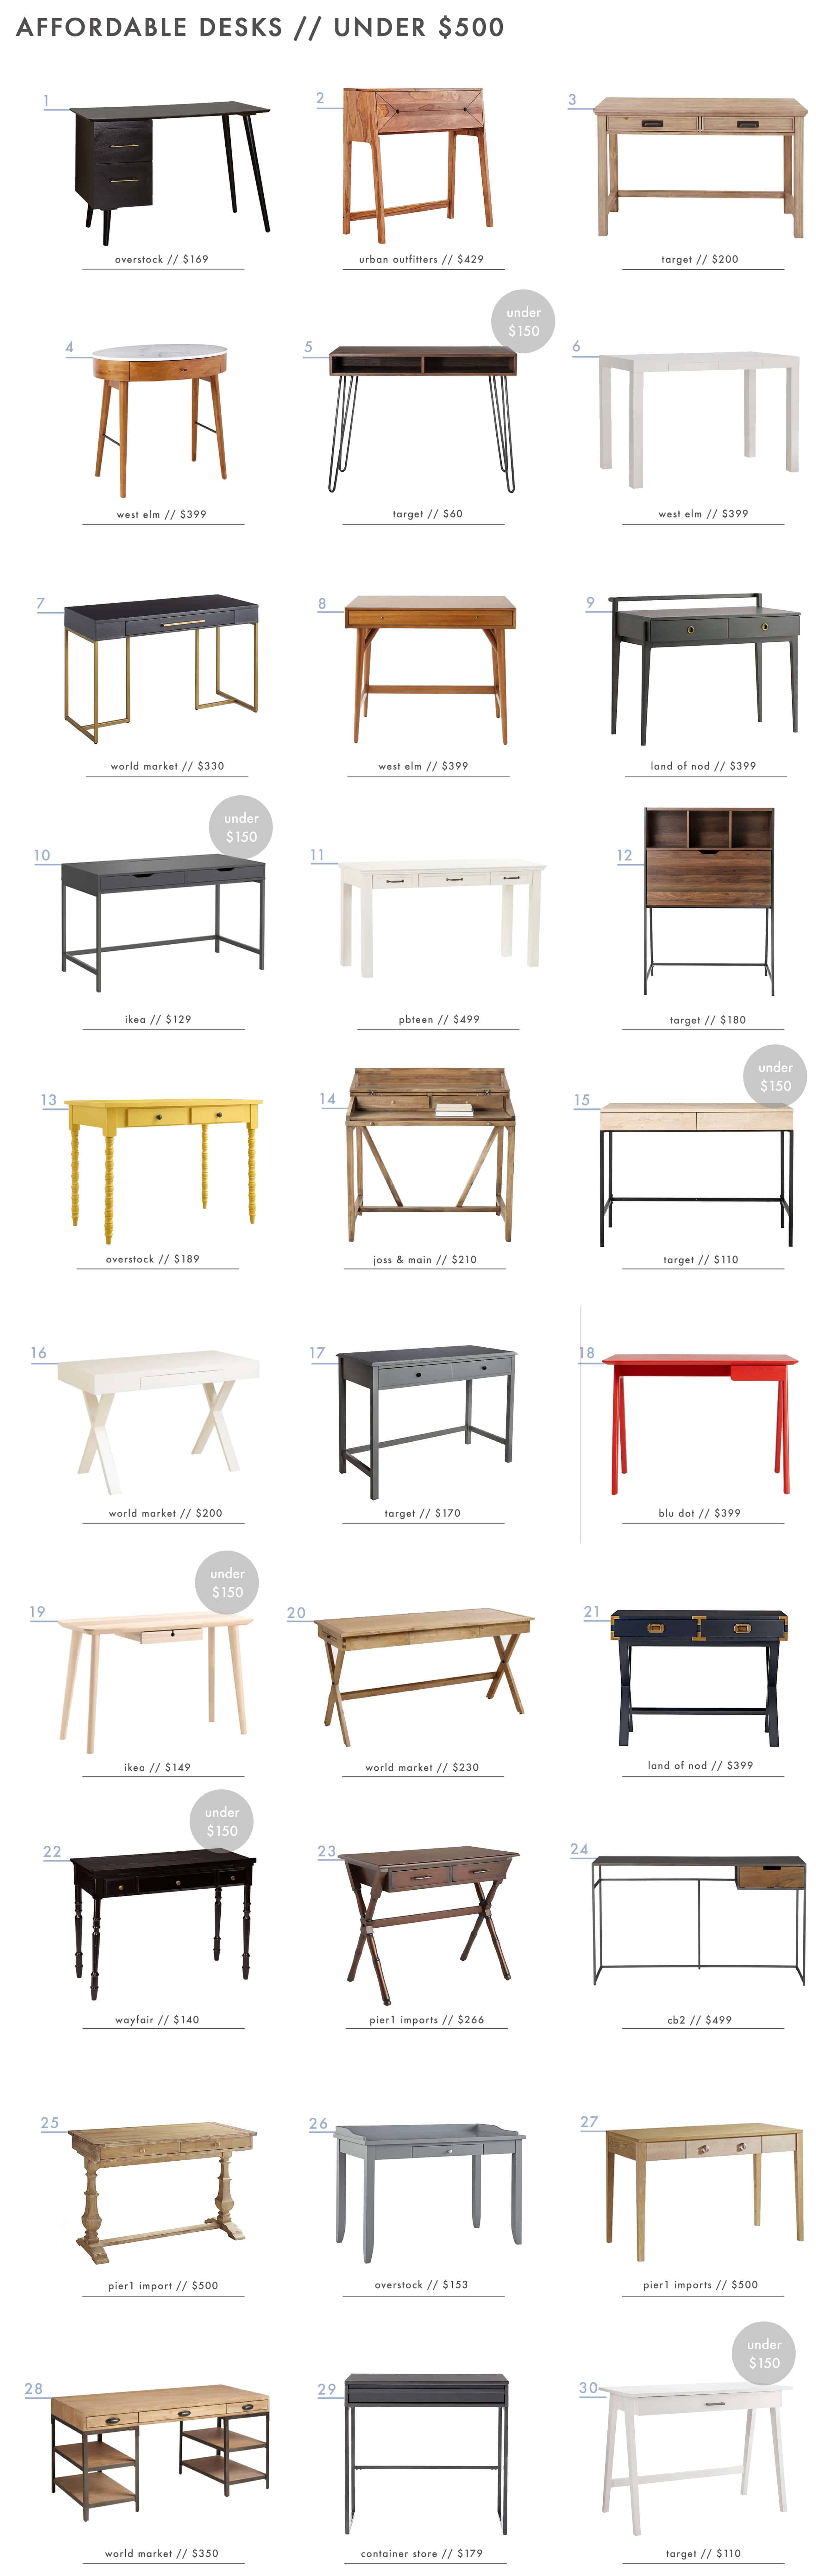 Emily Henderson Home Office Affordable Desks Under 500 Roundup